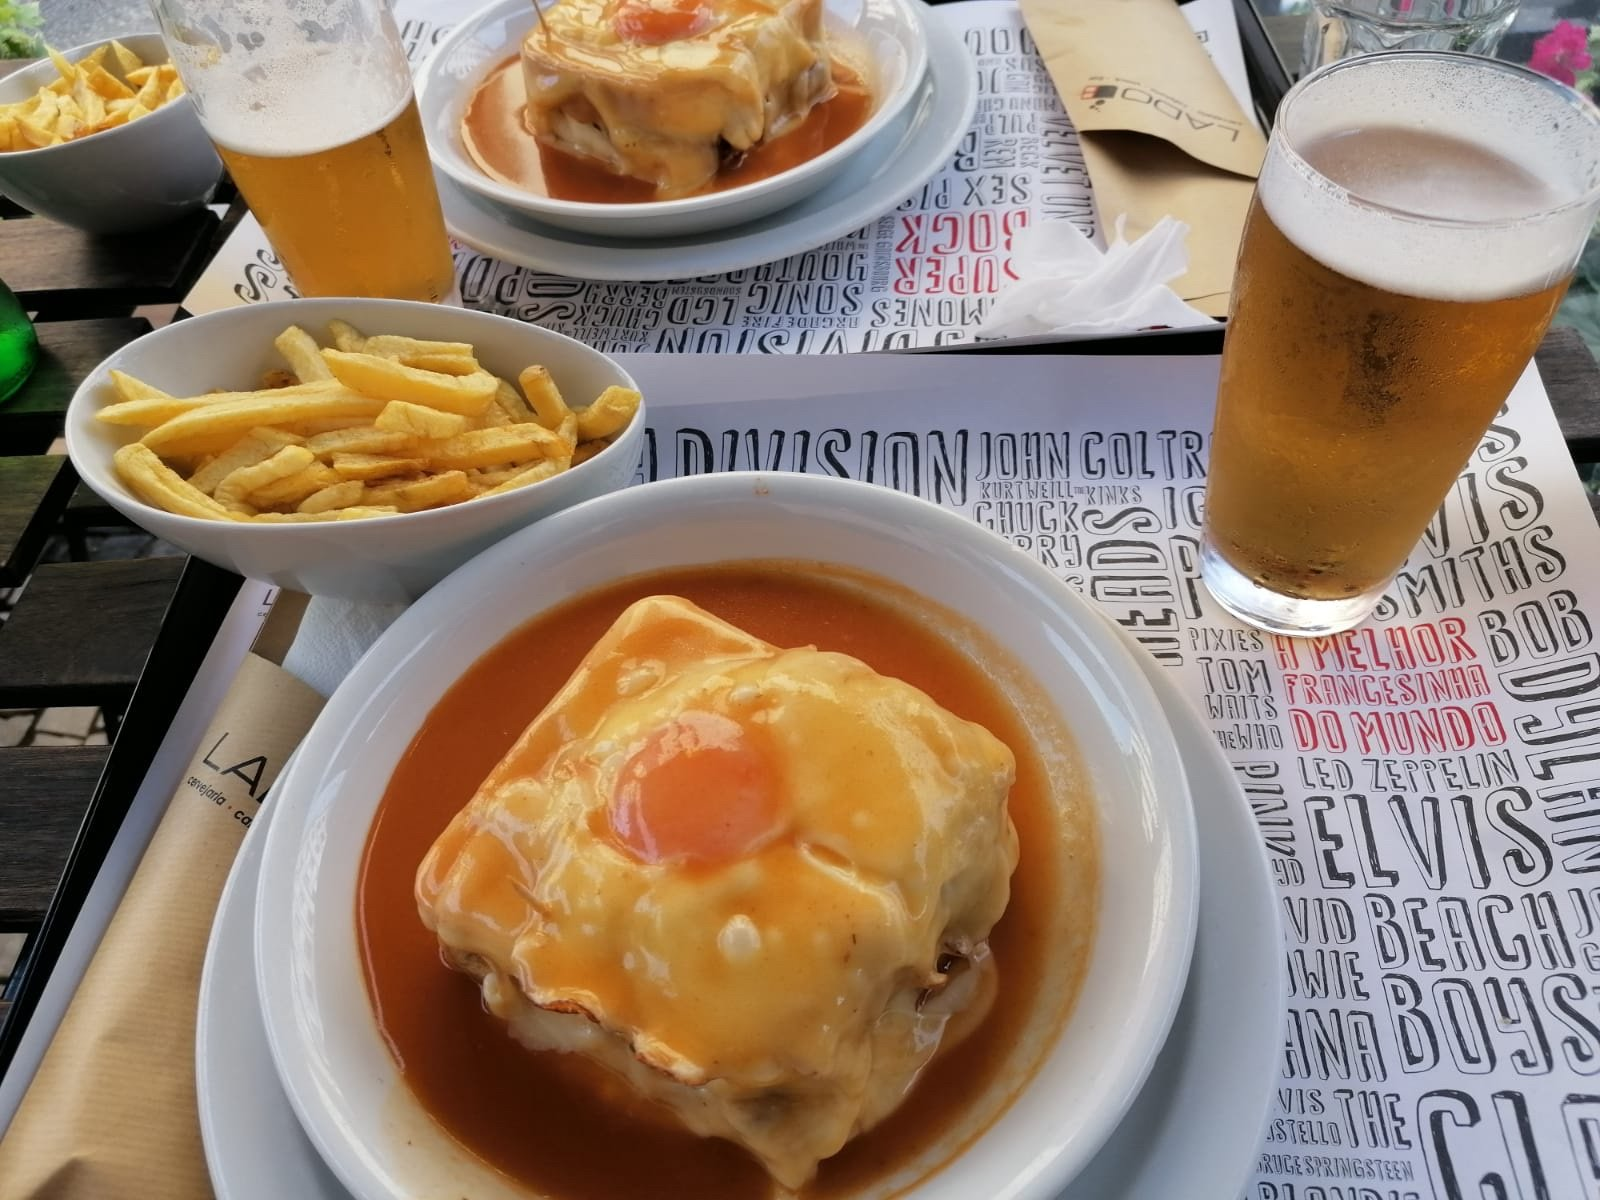 Food in Porto - Francesinha on a plate next to french fries and a glass of beer